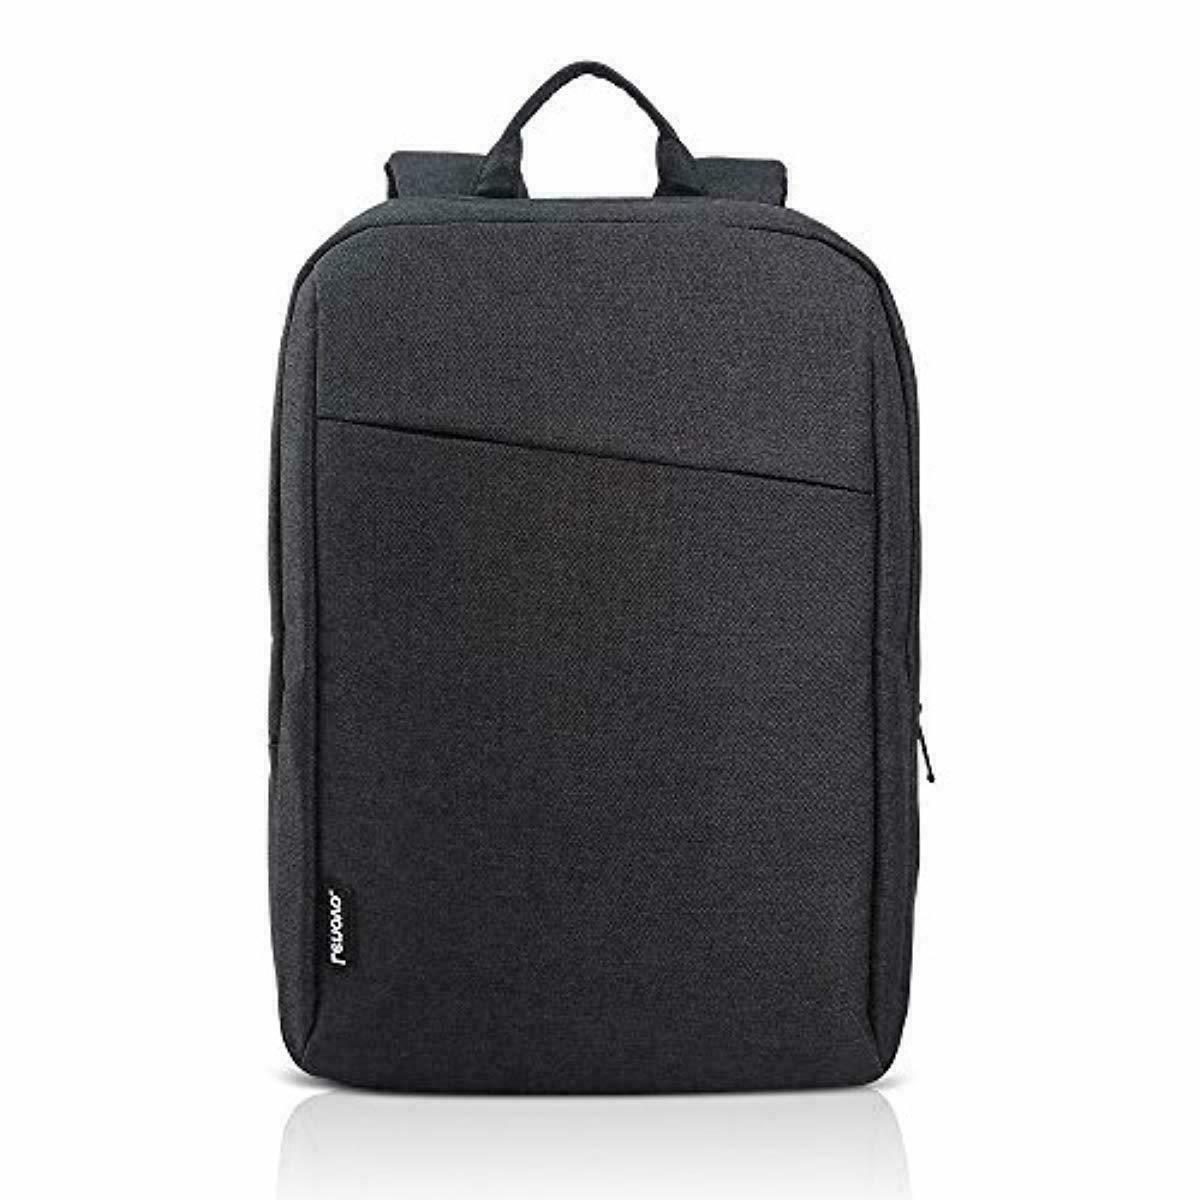 Lenovo Laptop fits Tablet, Great Backpack